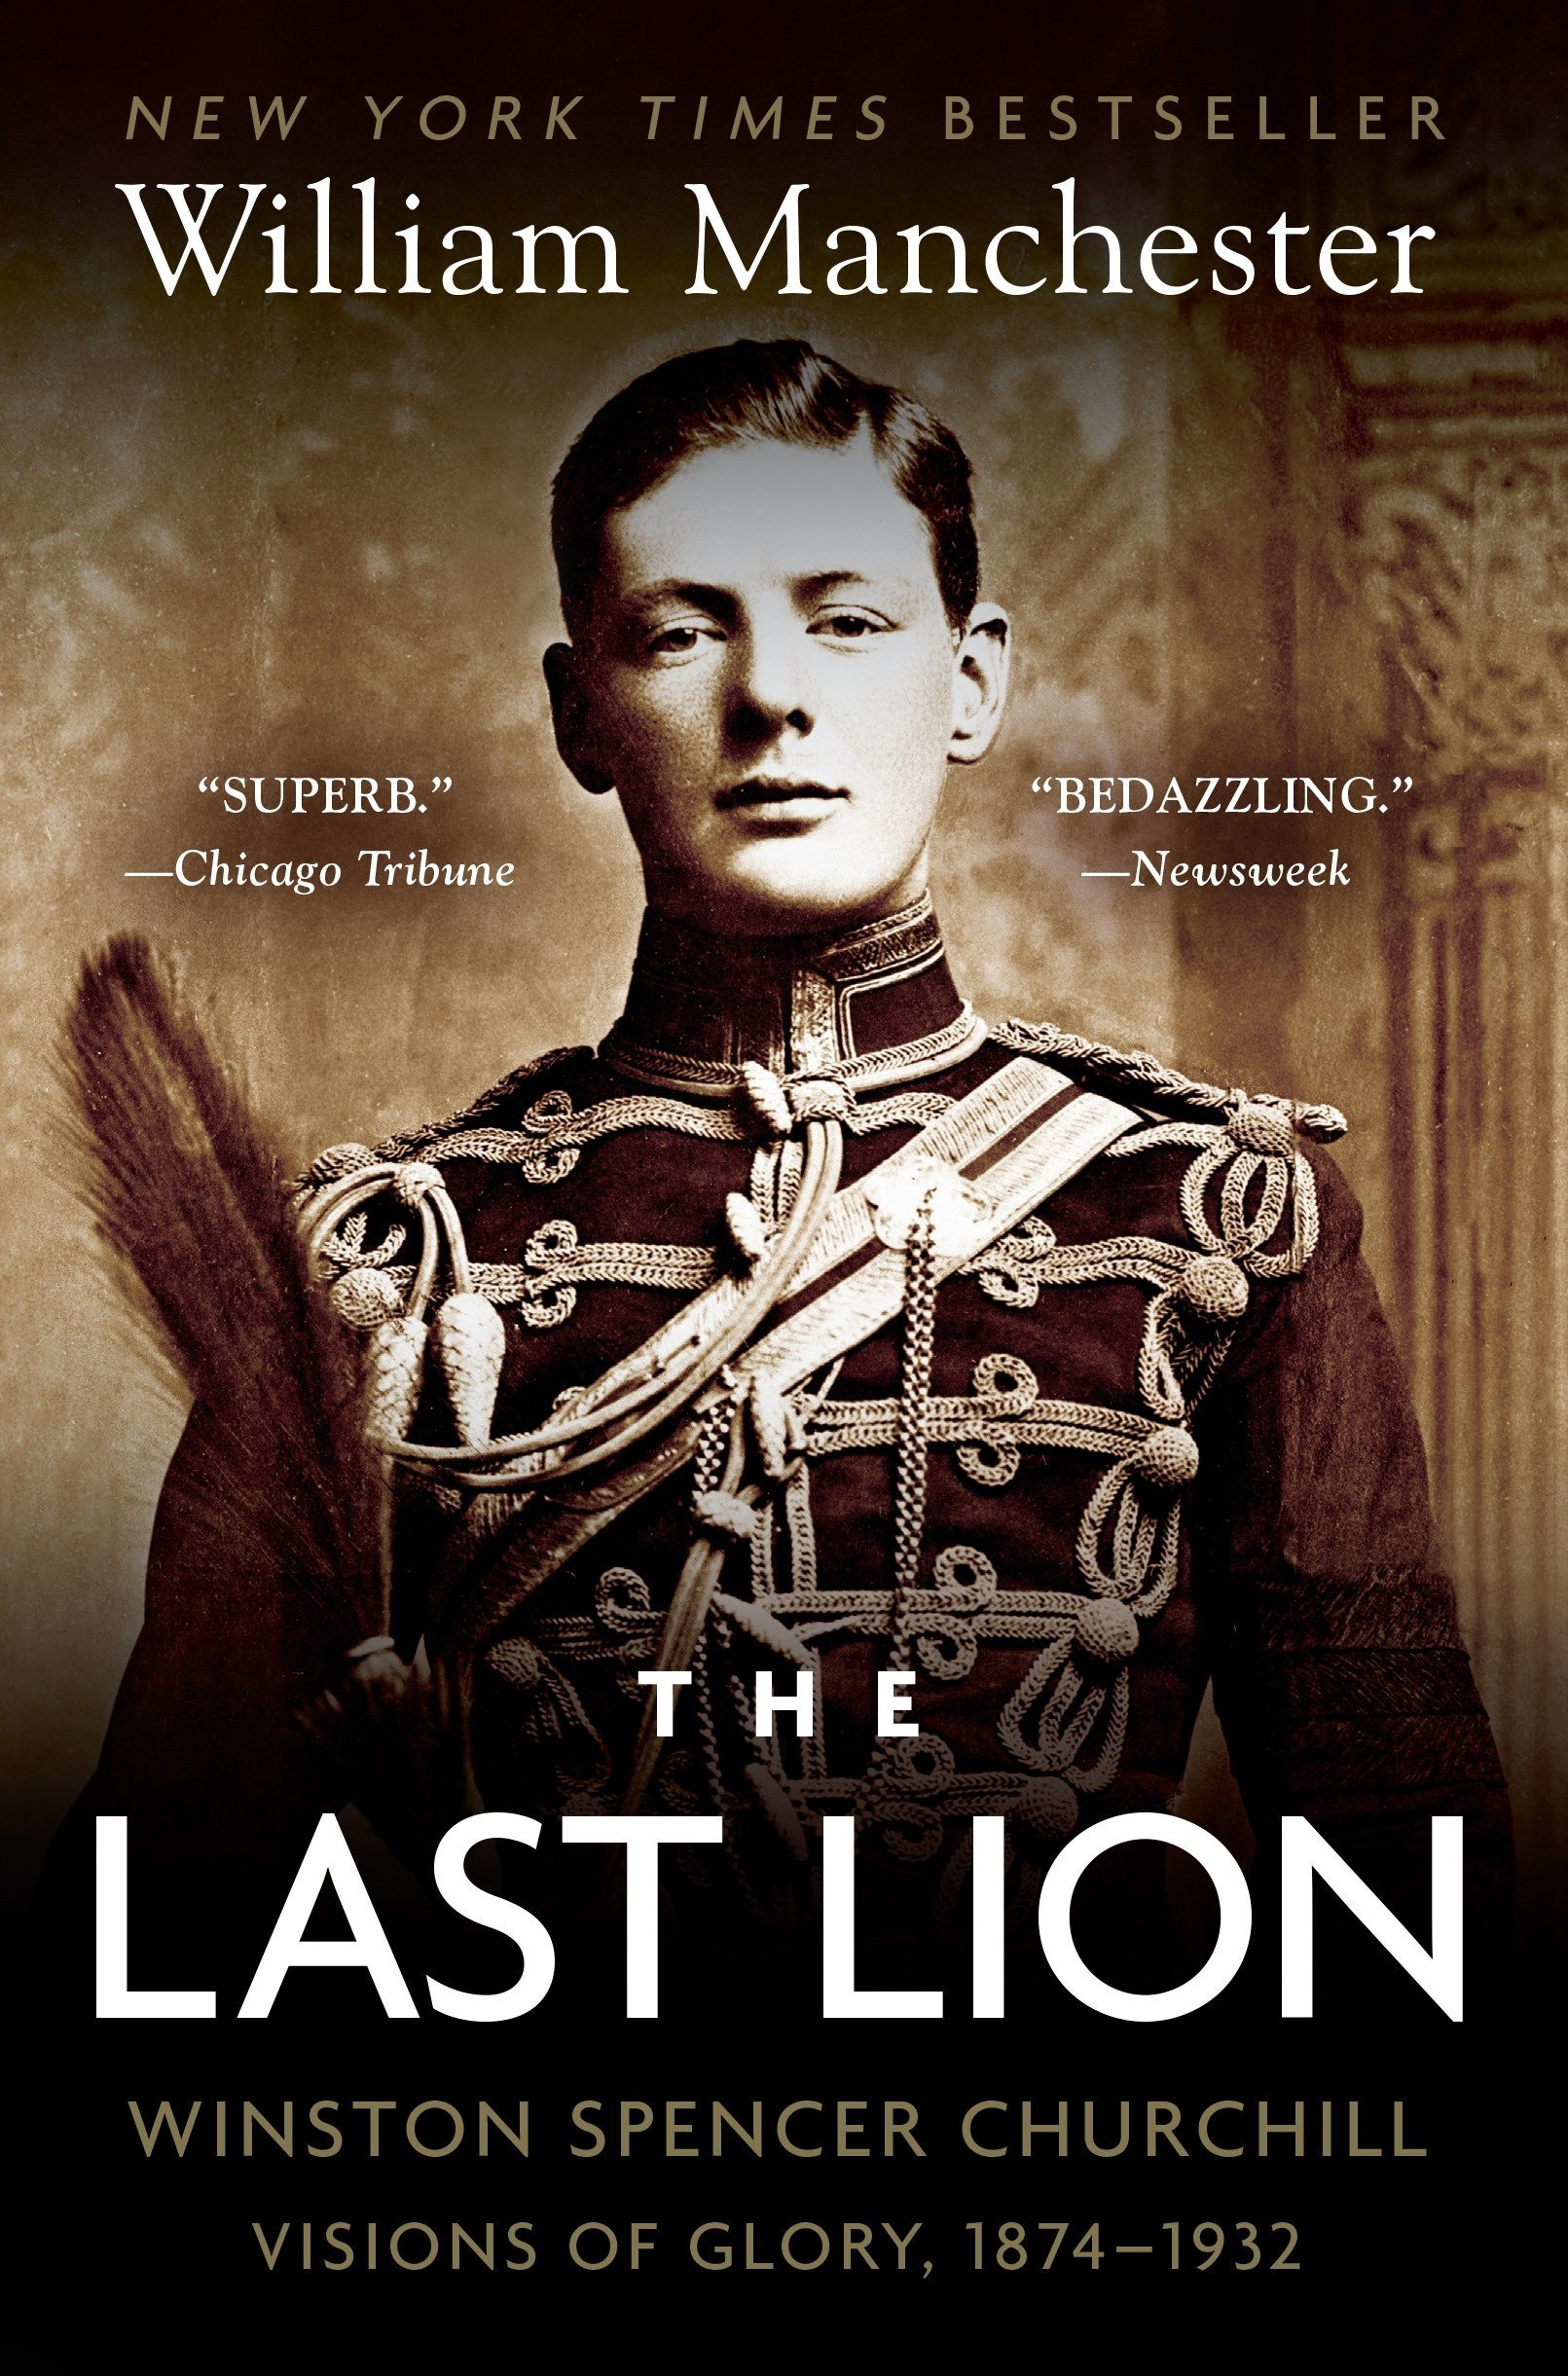 Amazon.com: The Last Lion: Winston Spencer Churchill: Visions of ...